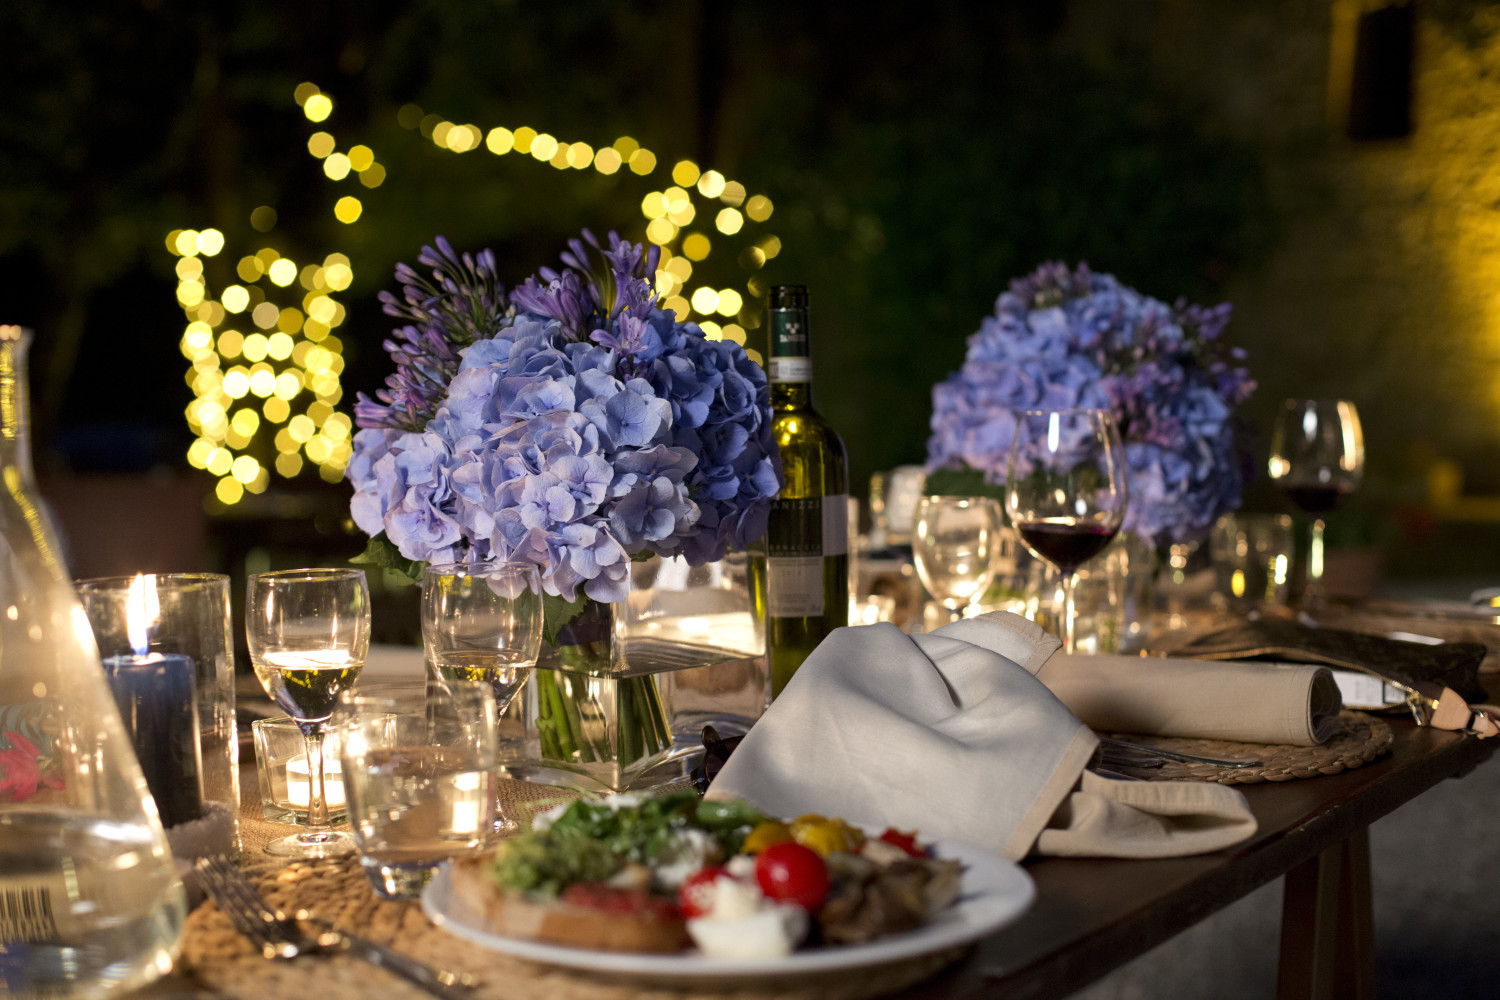 Rustic dinner in the tuscan countryside, destination wedding in Tuscany